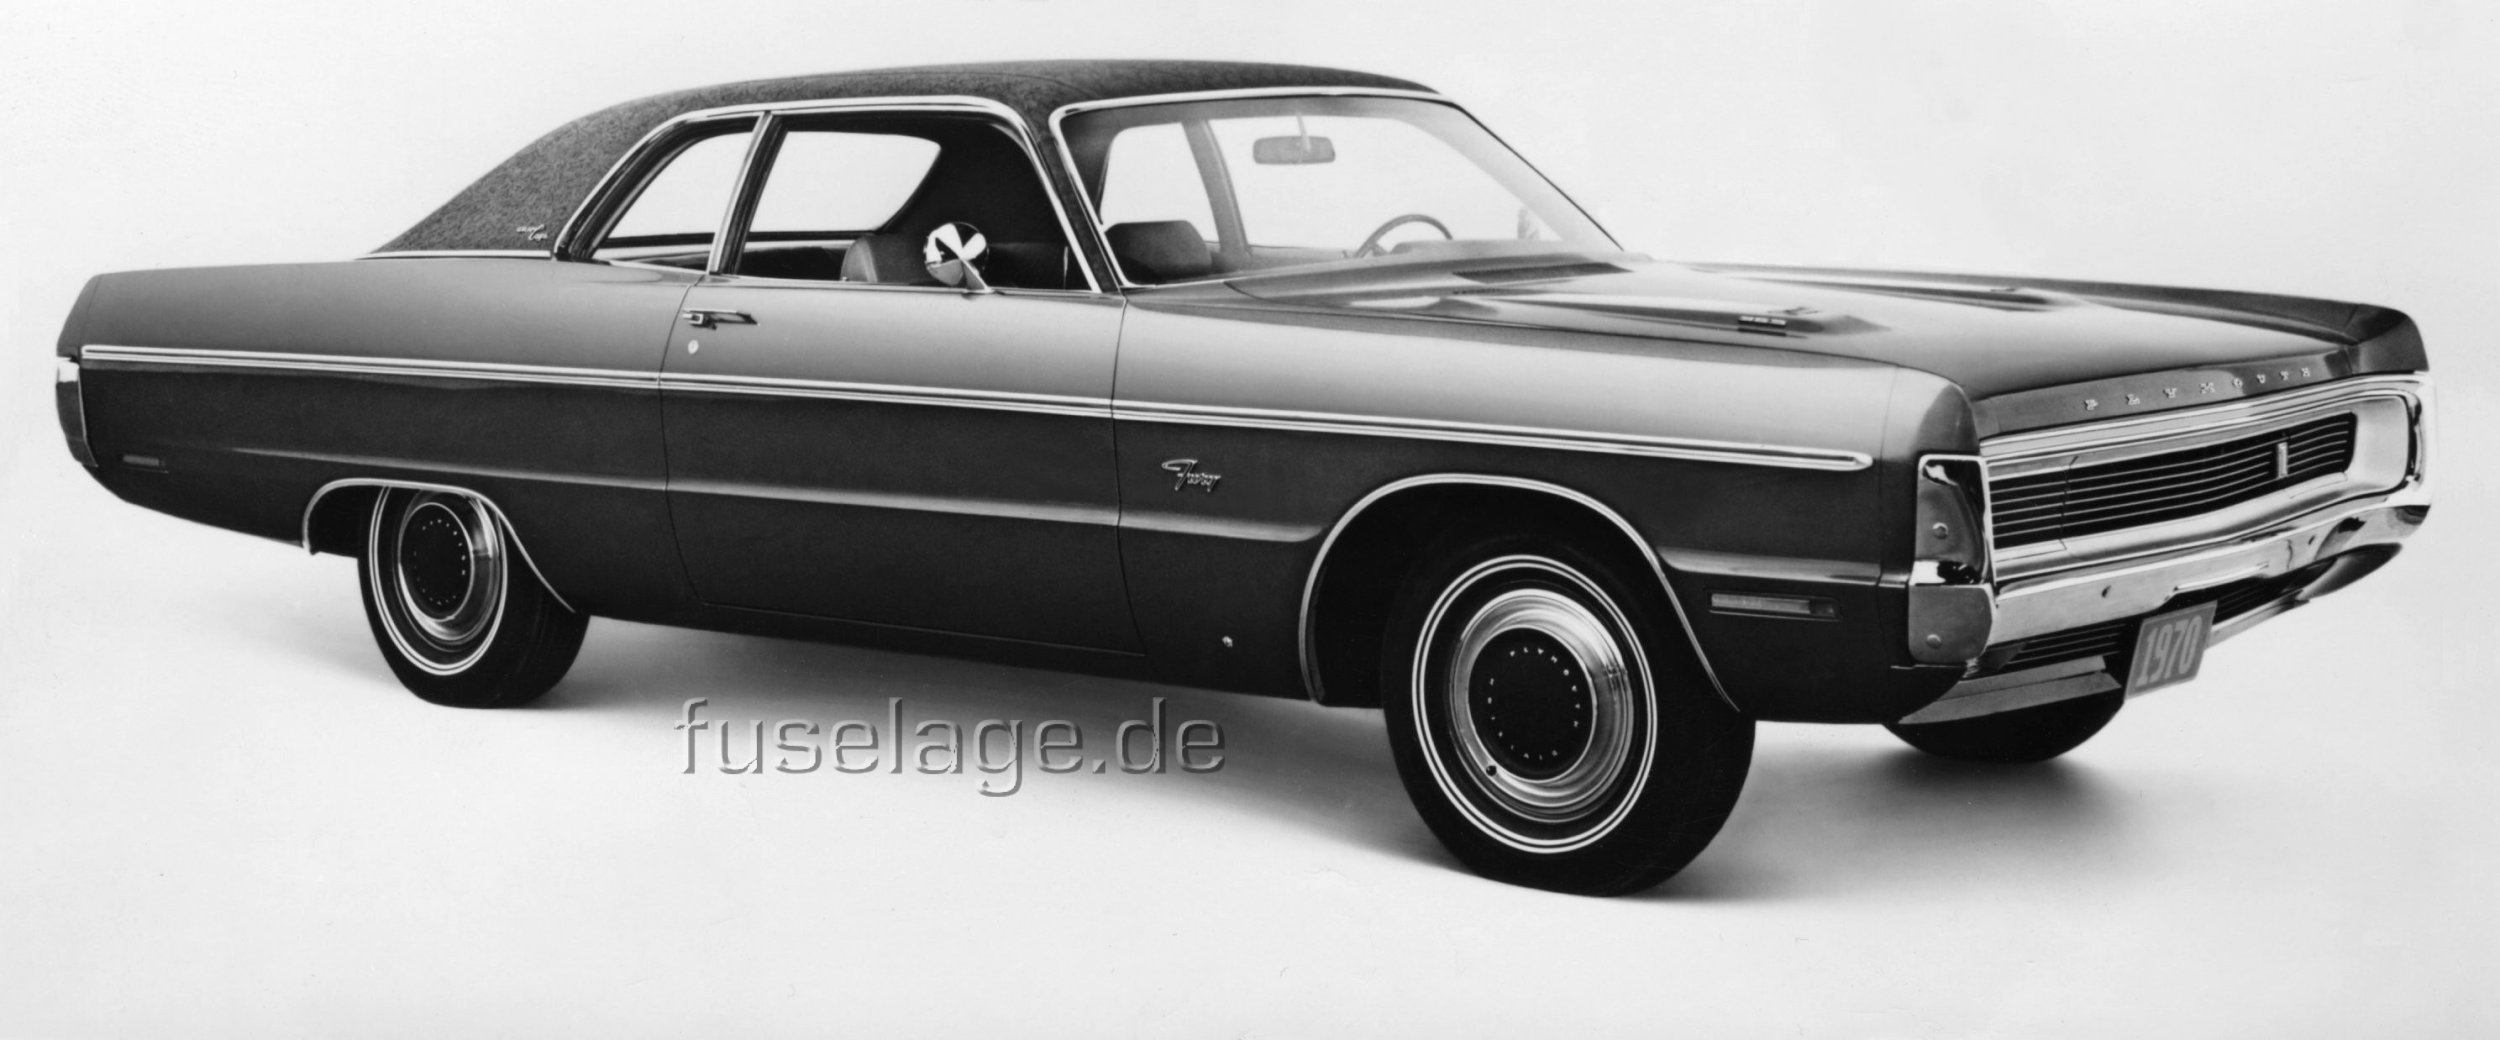 This is a press photo of the above mentioned 1970 plymouth fury